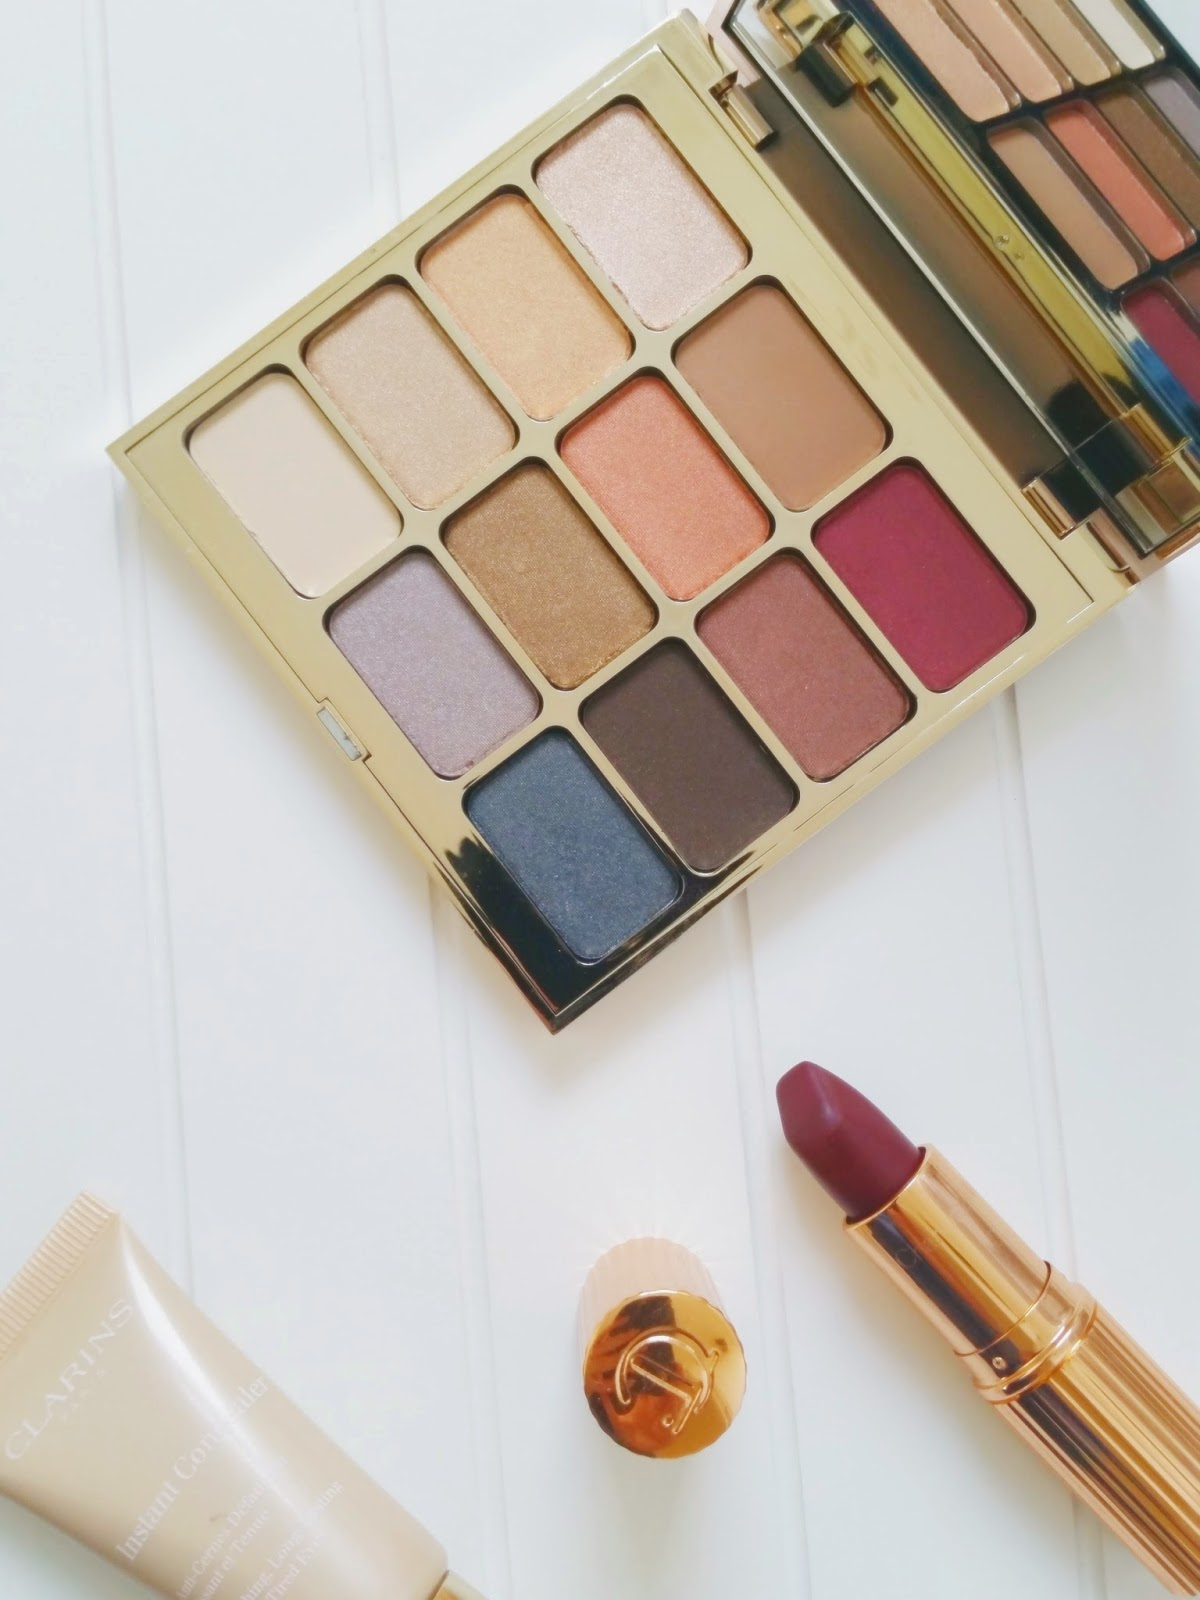 Stila - Eyes Are The Window Palette in Spirit